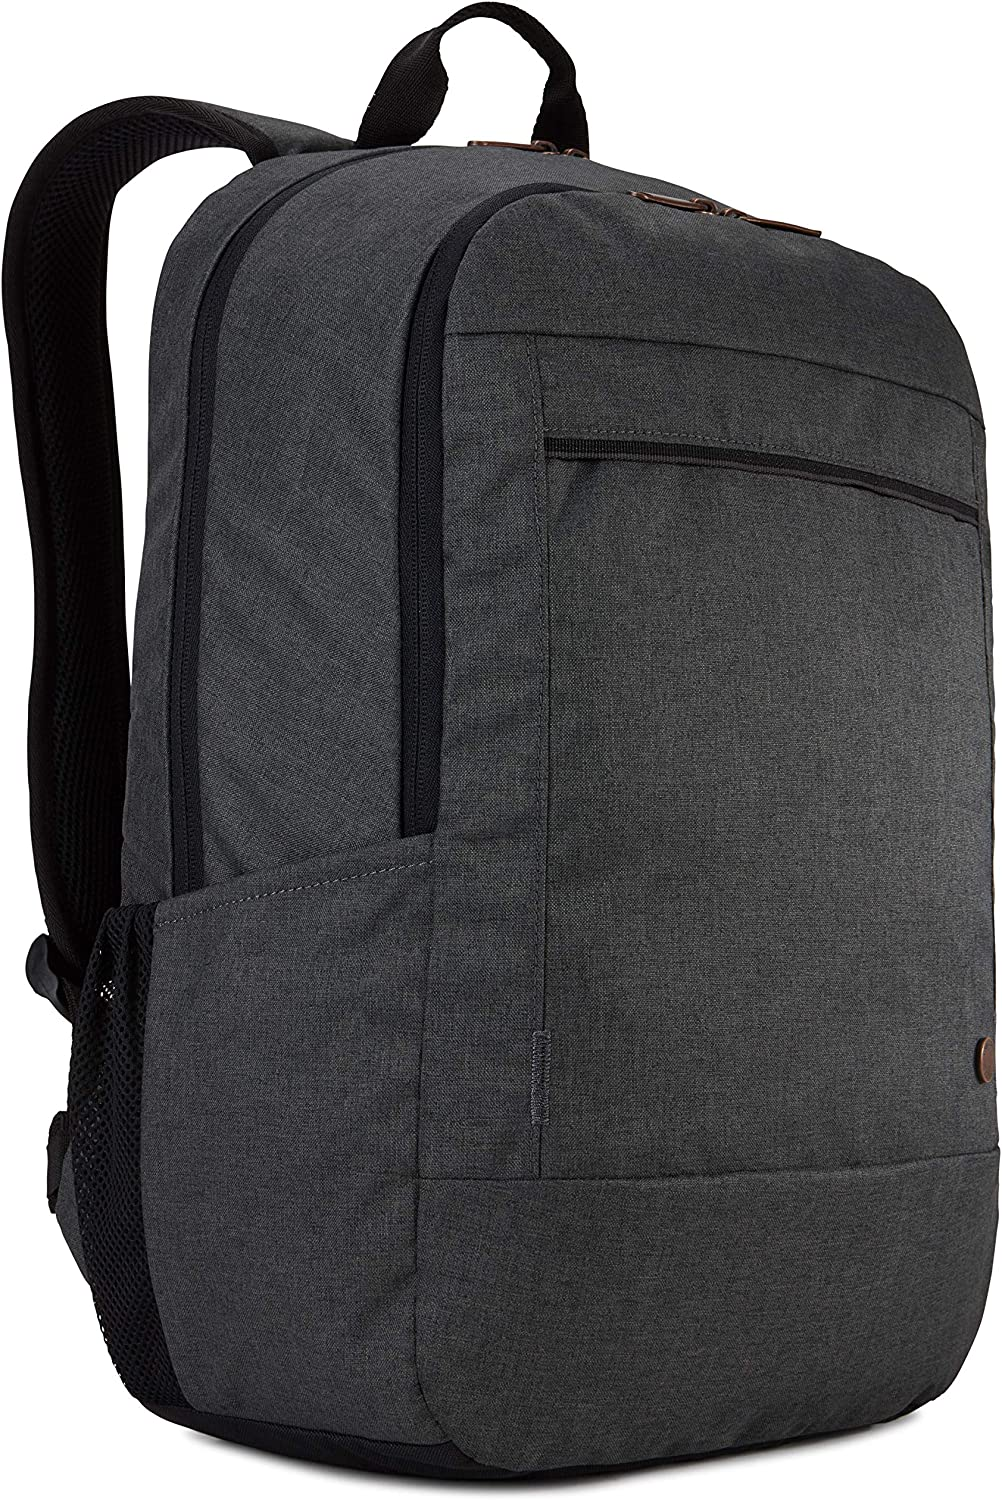 "Case Logic 3203697 Era 15.6"" Laptop Backpack, Obsidian"